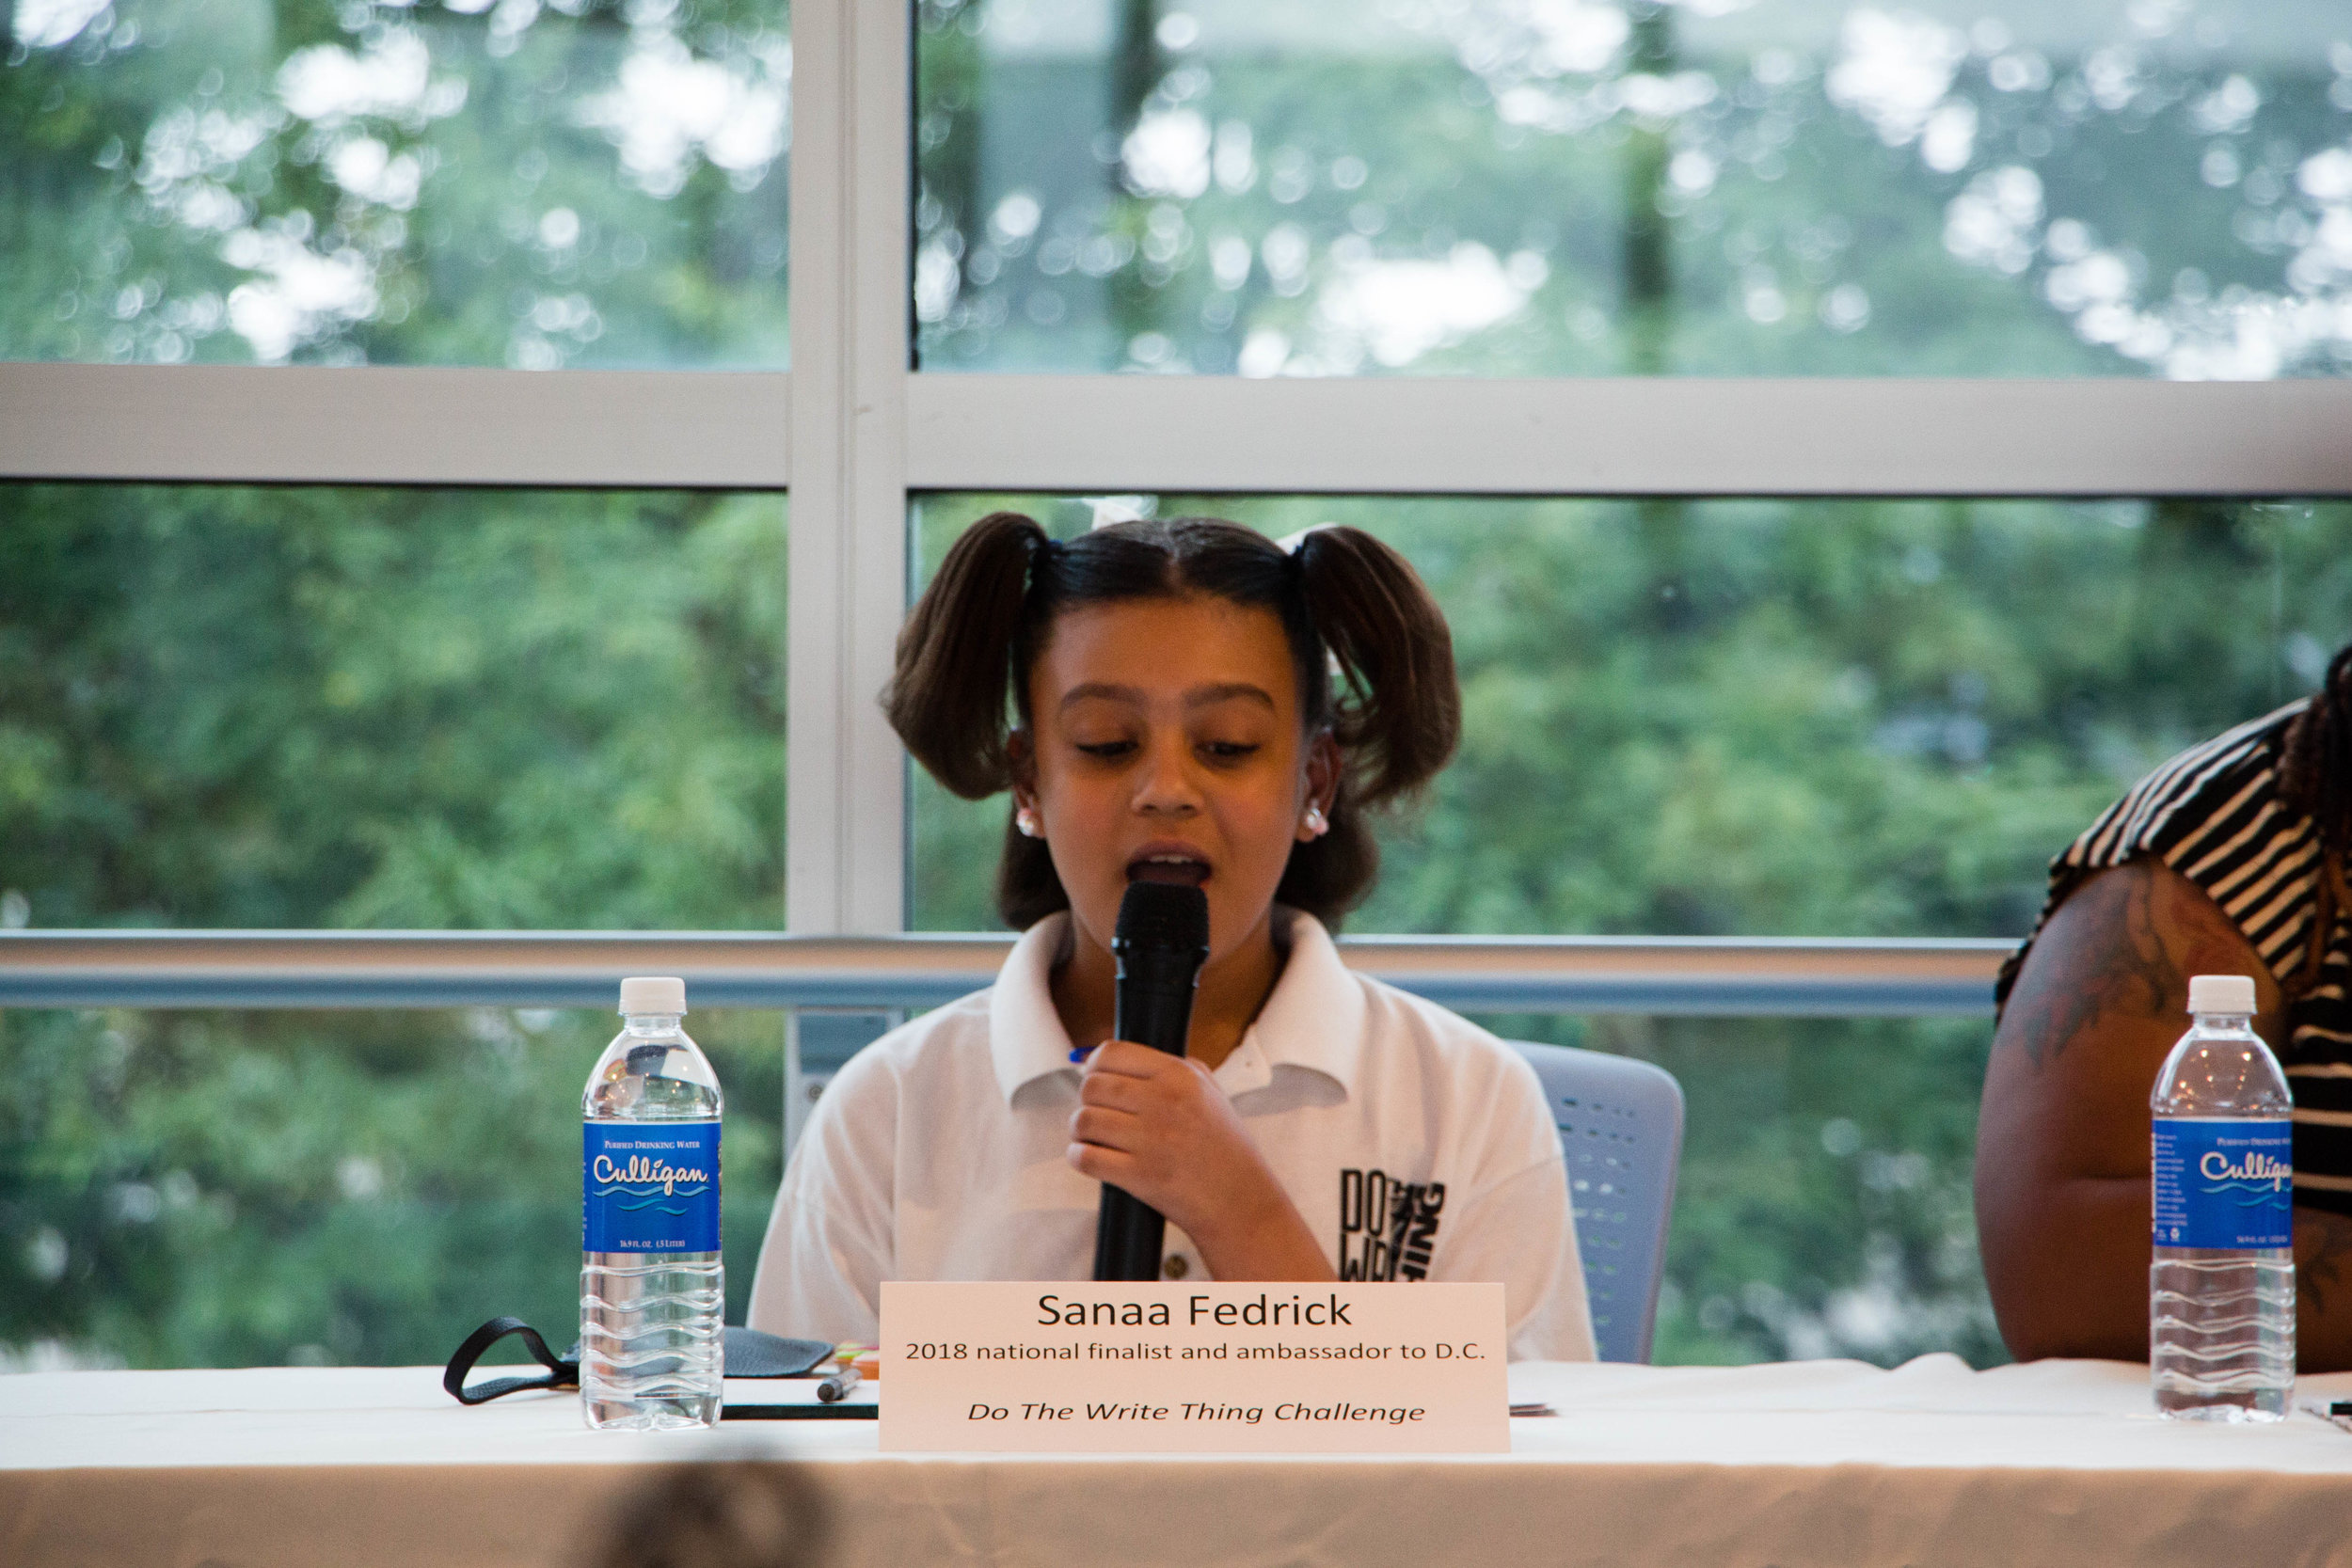 """"""" Gun violence shouldn't be happening. I should be worried about my future instead ."""" - Sanaa Fedrick, Do The Write Thing Challenge"""